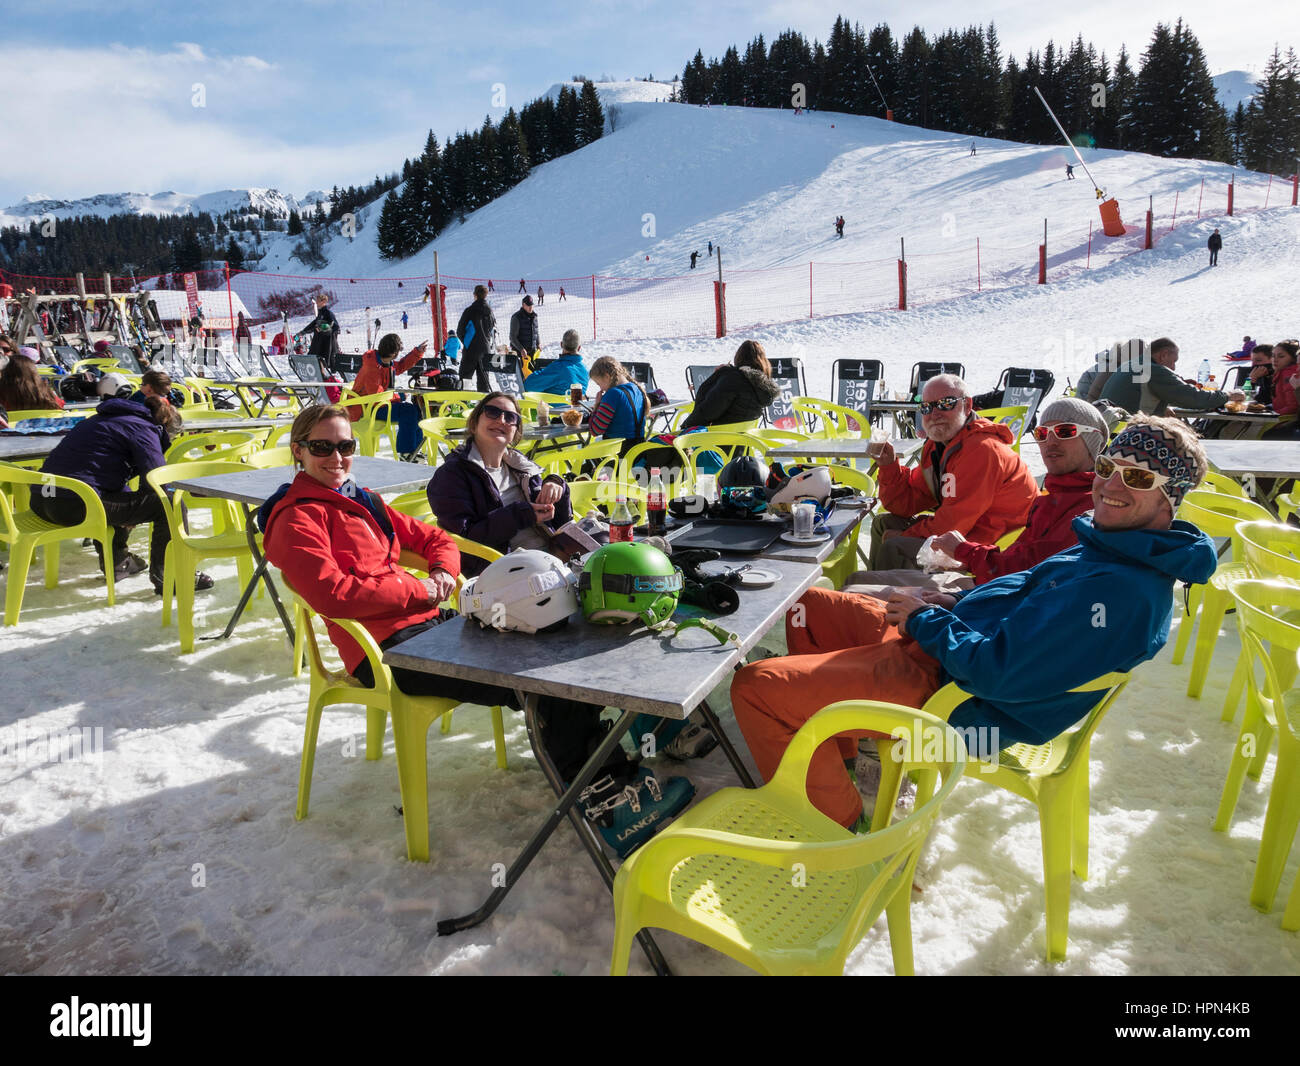 Family and friends skiers on a winter holiday enjoying sunshine dining outside a ski restaurant in French Alps. - Stock Image